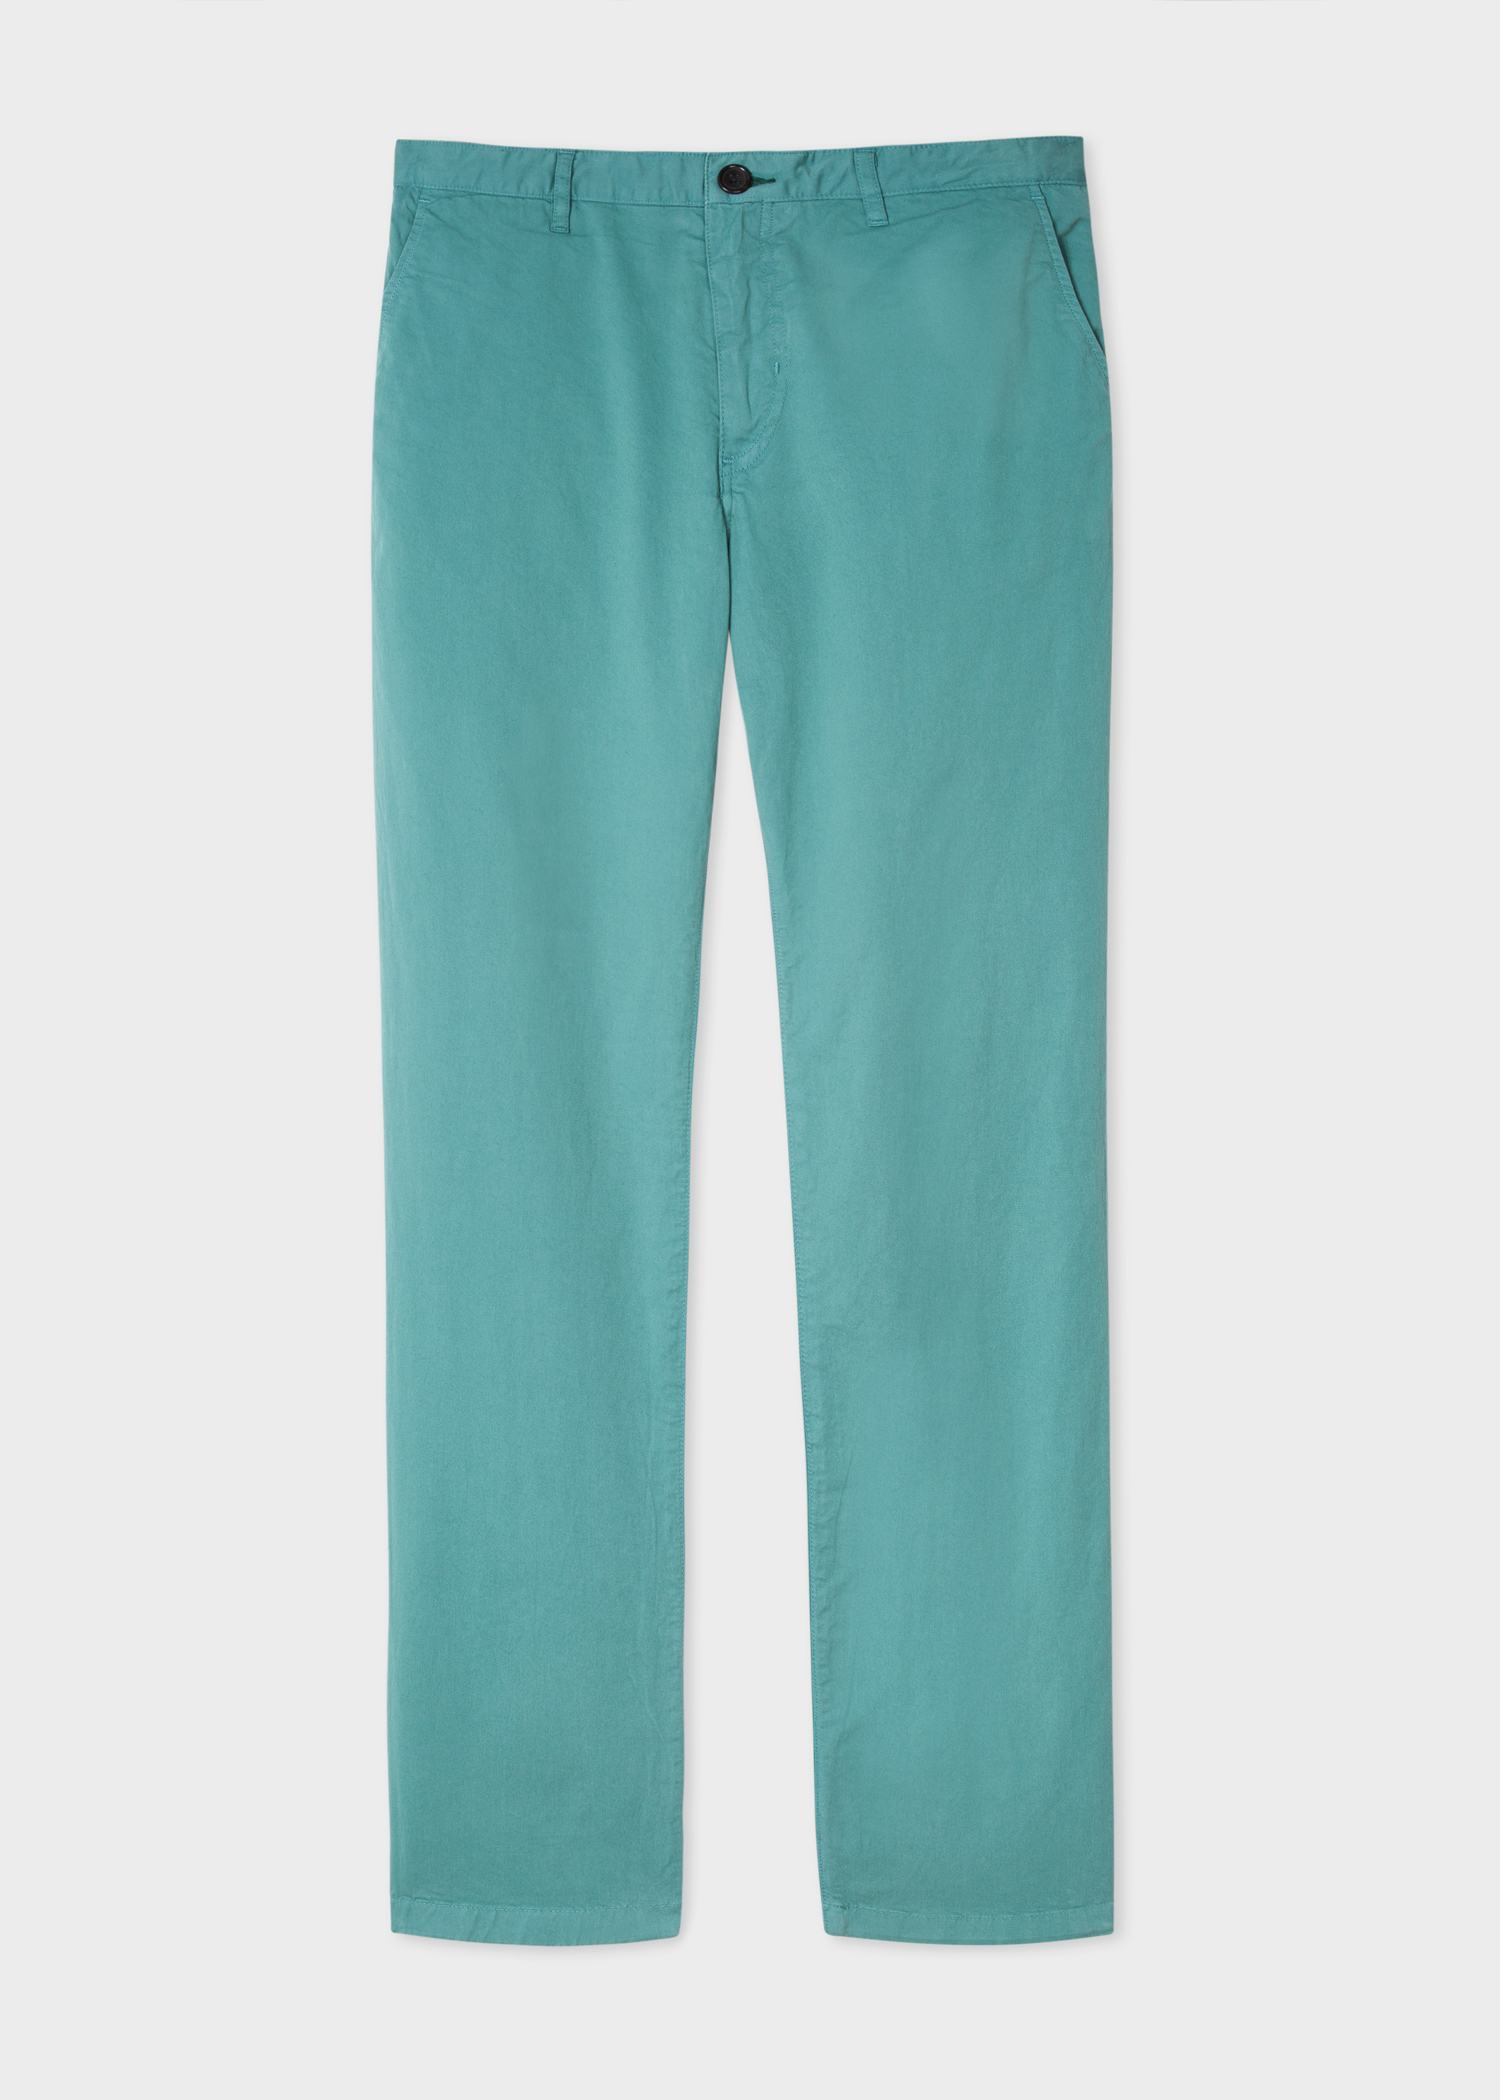 2c99f18ba032 Front view - Men s Slim-Fit Turquoise Stretch Pima-Cotton Chinos Paul Smith